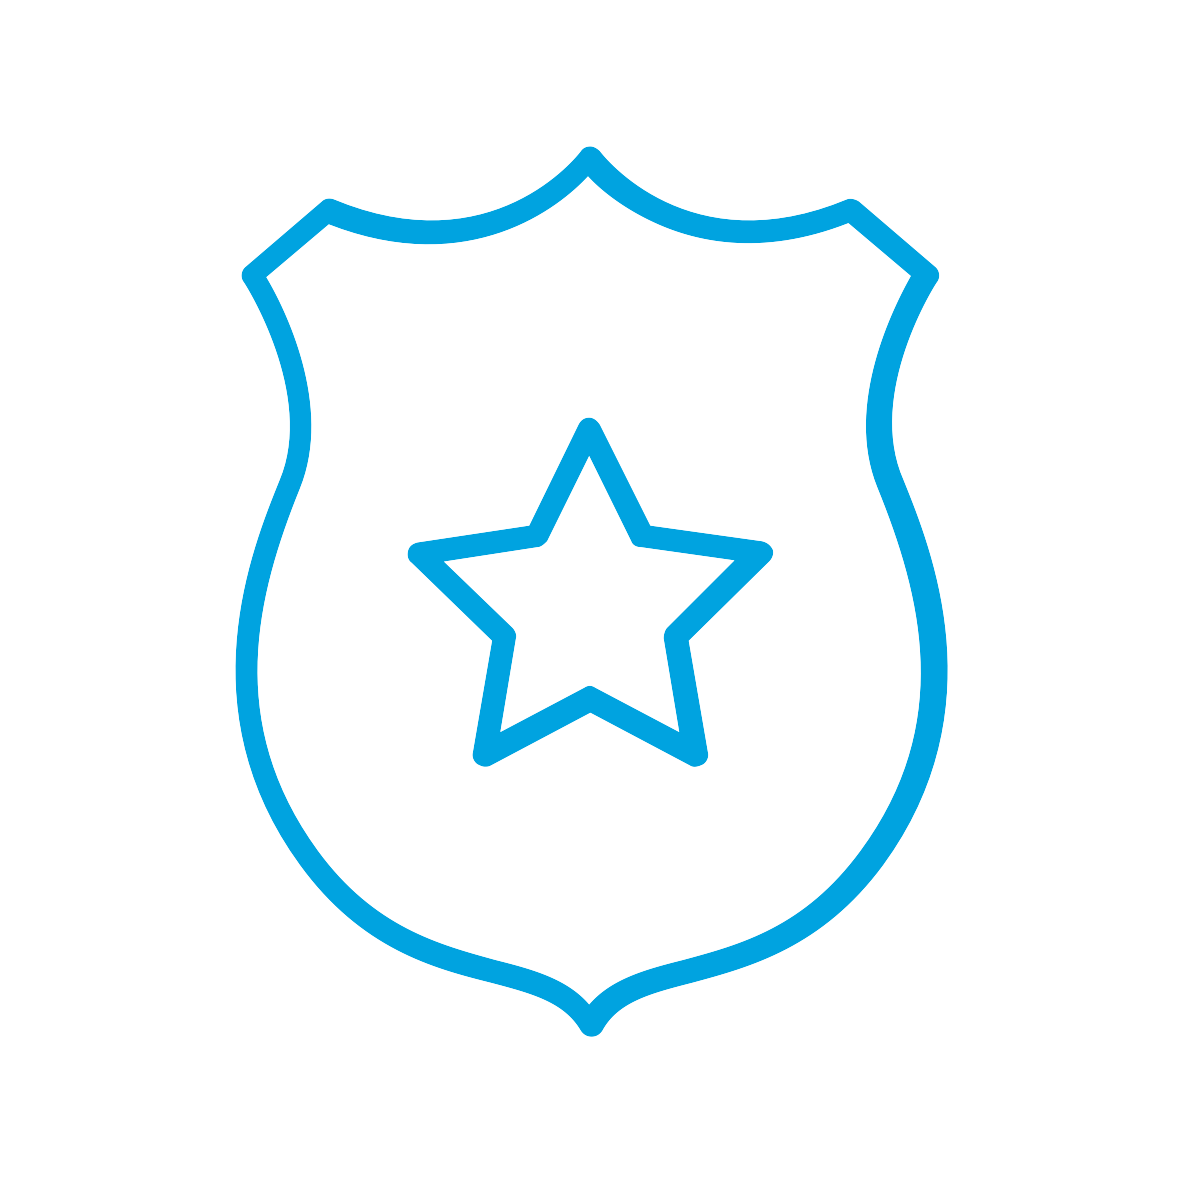 Badge Decorated with a Star